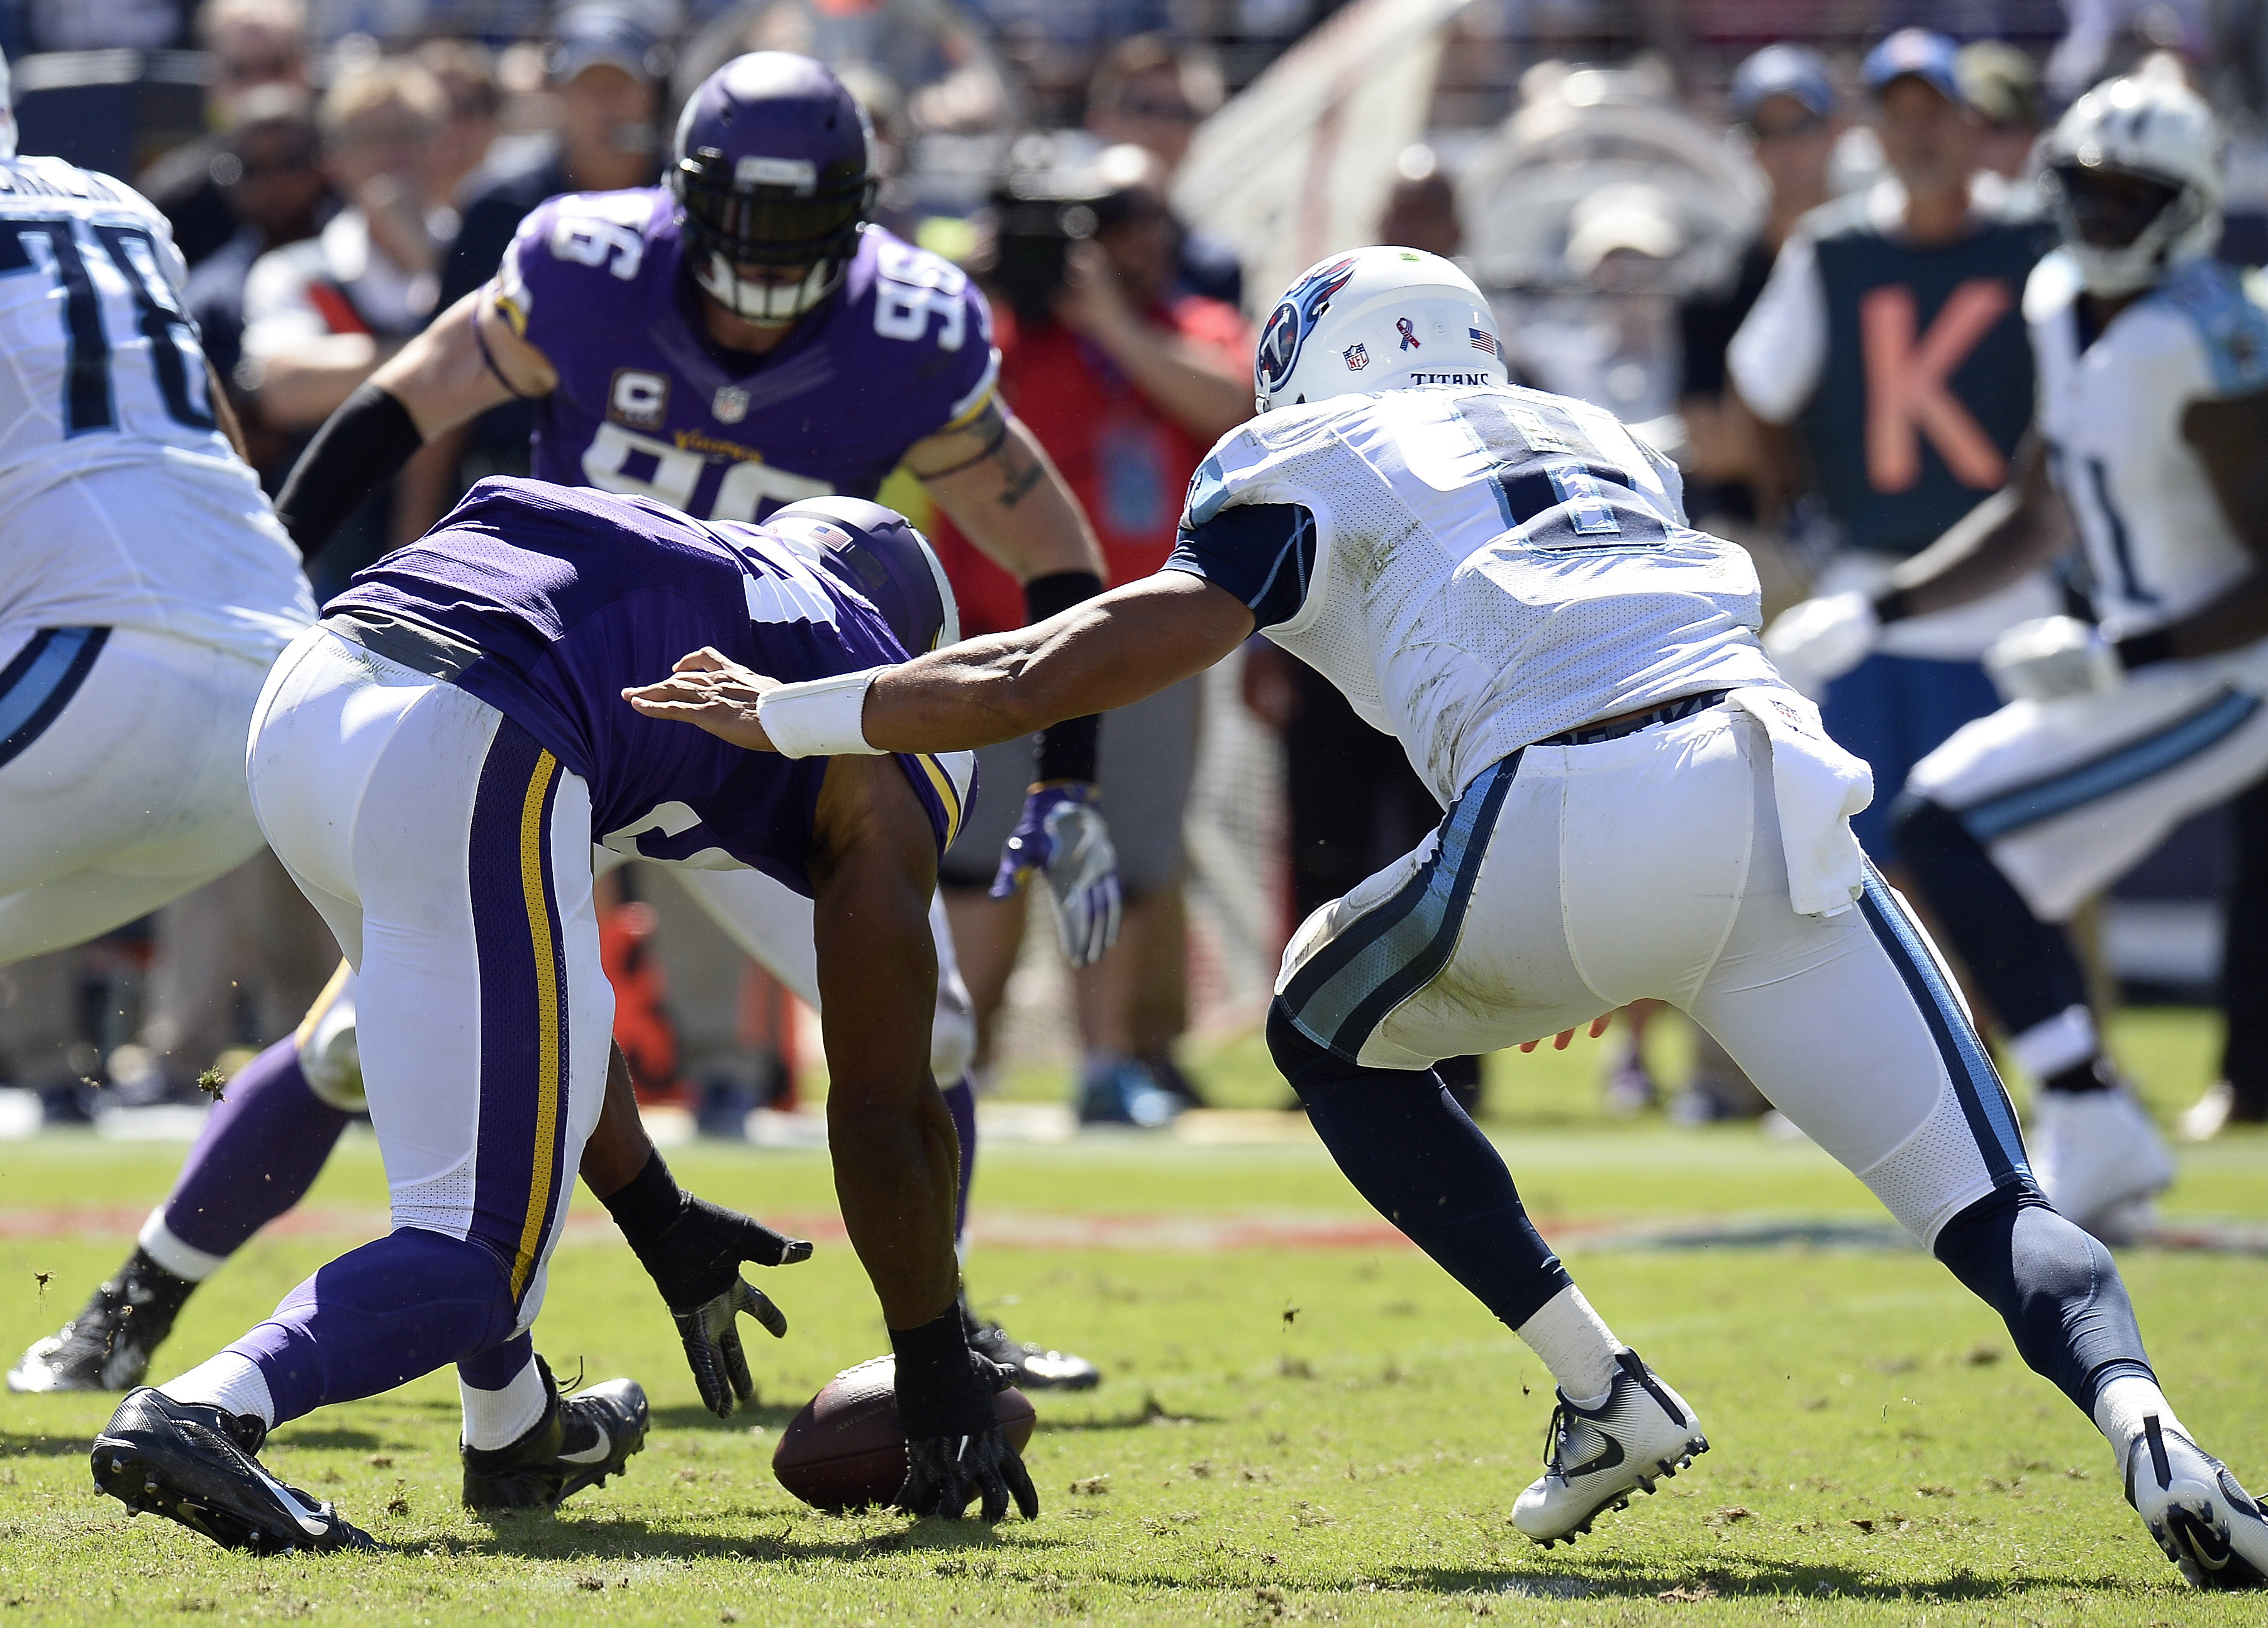 FILE - In this Sunday, Sept. 11, 2016, file photo, Minnesota Vikings defensive end Danielle Hunter, left, recovers a fumble by Tennessee Titans quarterback Marcus Mariota, right, and returns it 24 yards for a touchdown in the second half of an NFL footbal